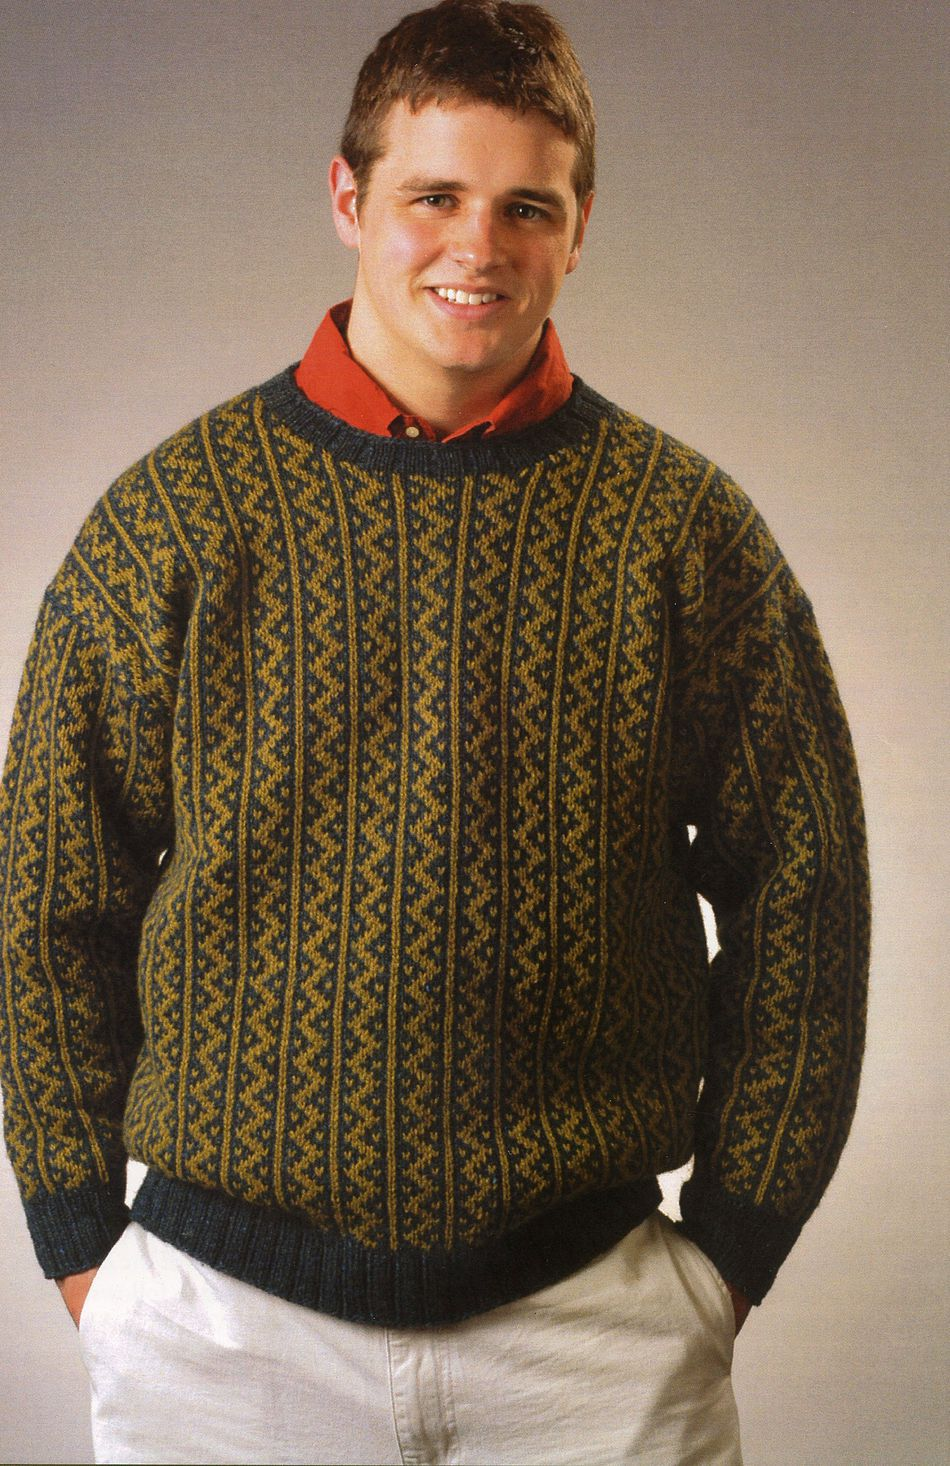 Knitting Patterns Highland Storm Pullover Harrisville Designs